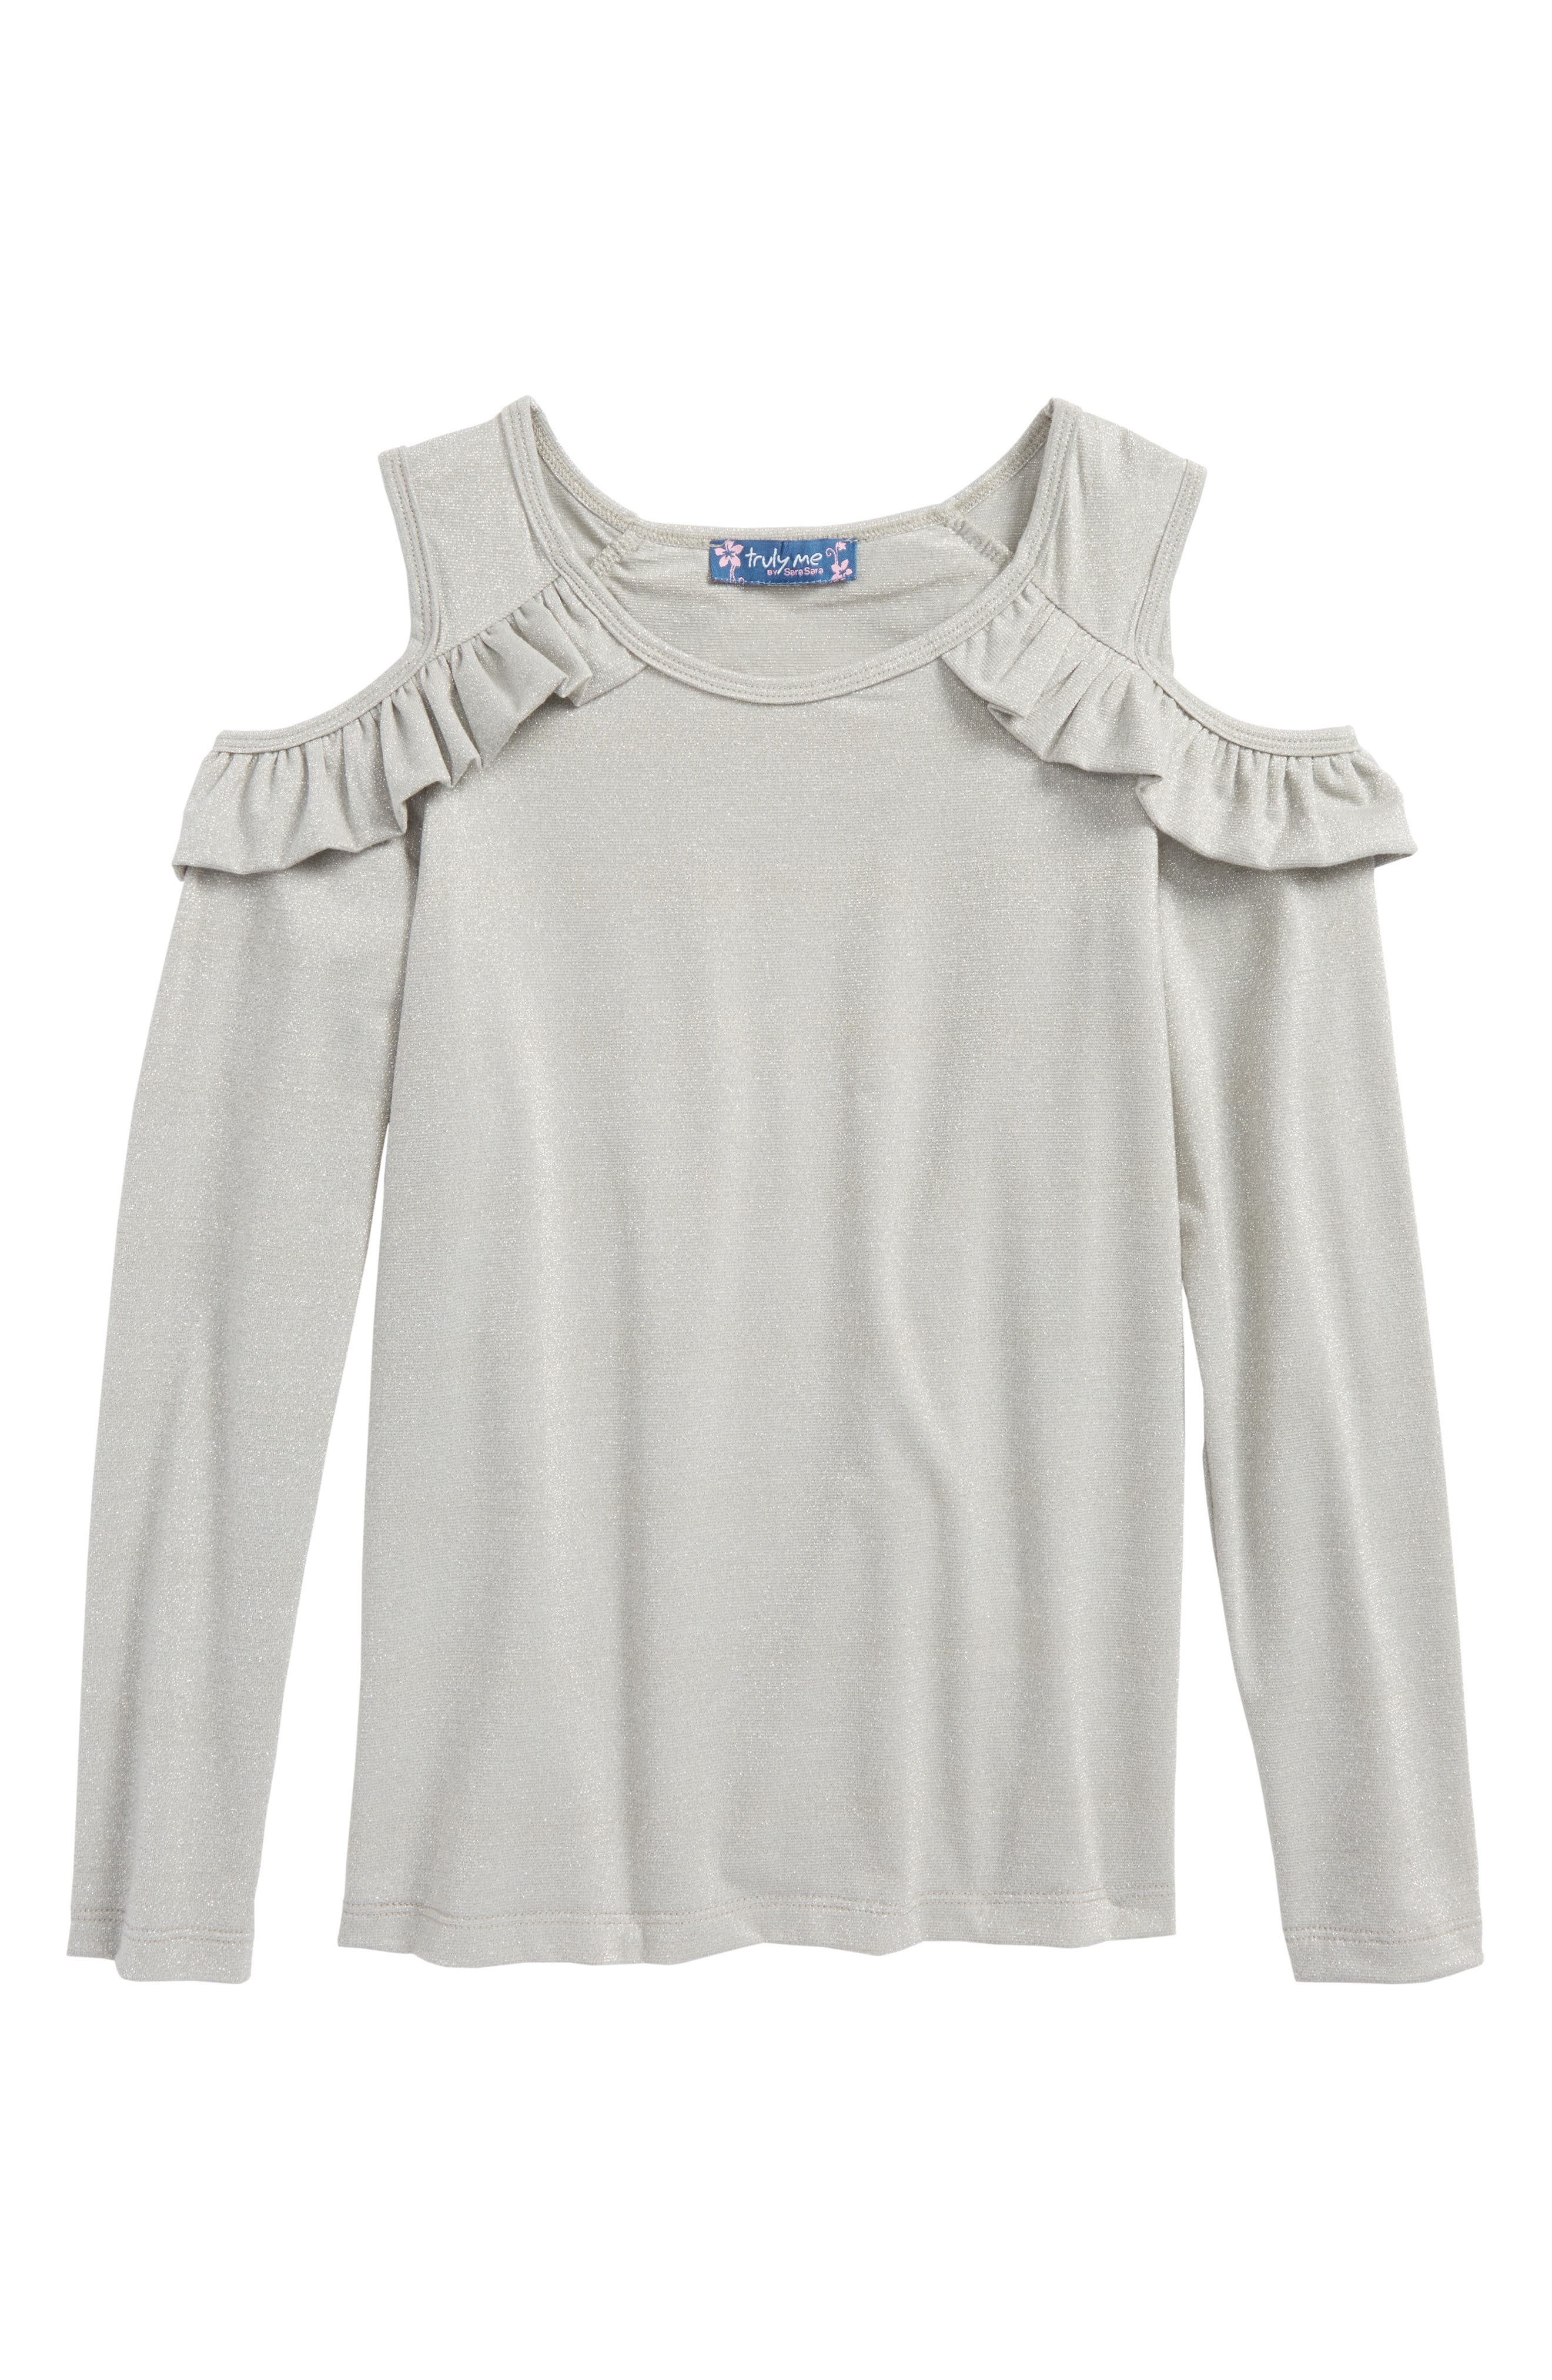 TRULY ME Cold Shoulder Top, Main, color, 040